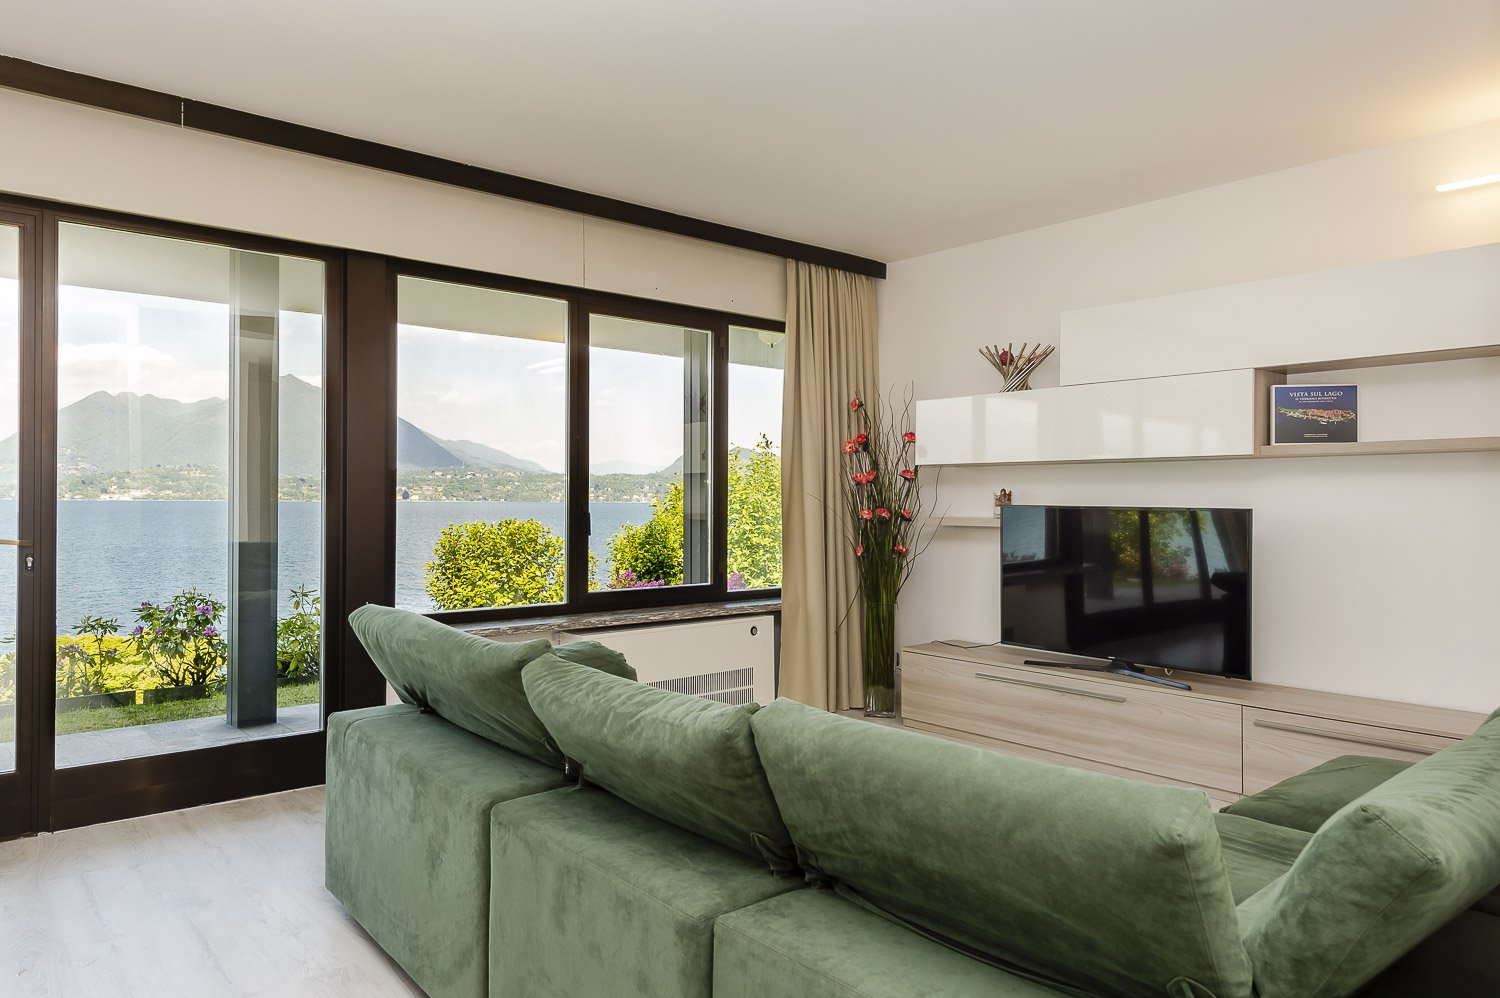 Villa for sale in Stresa with dock and beach